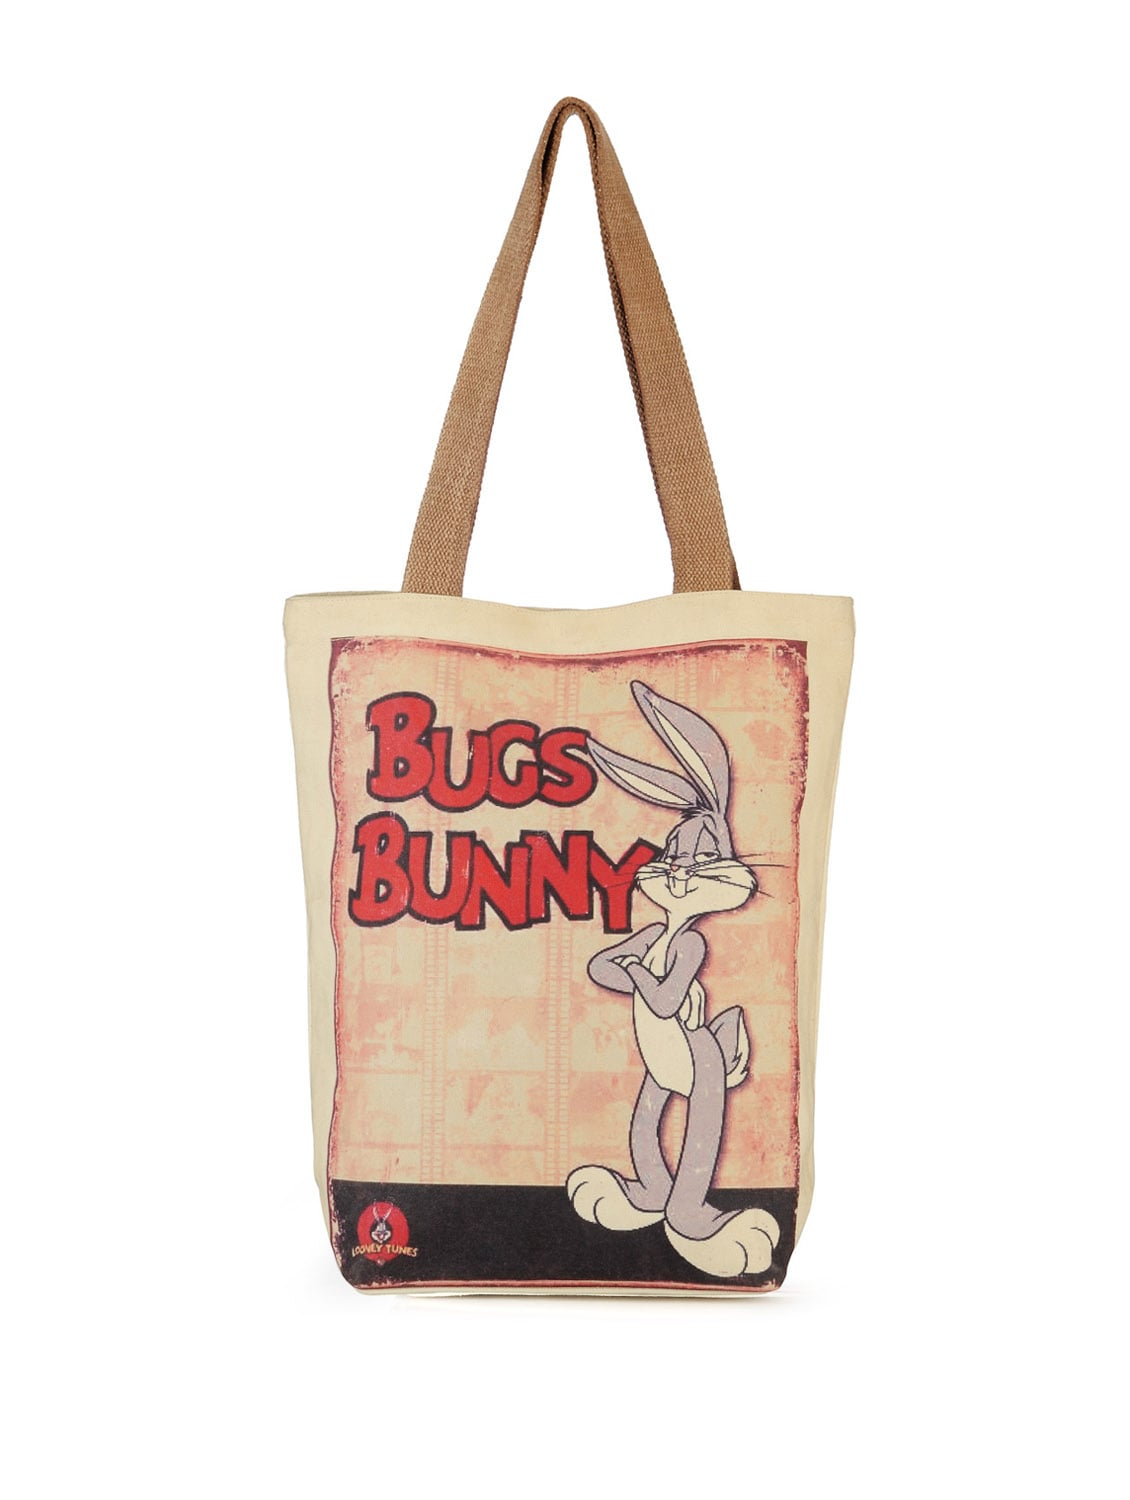 Bugs Bunny Handbag - The House Of Tara